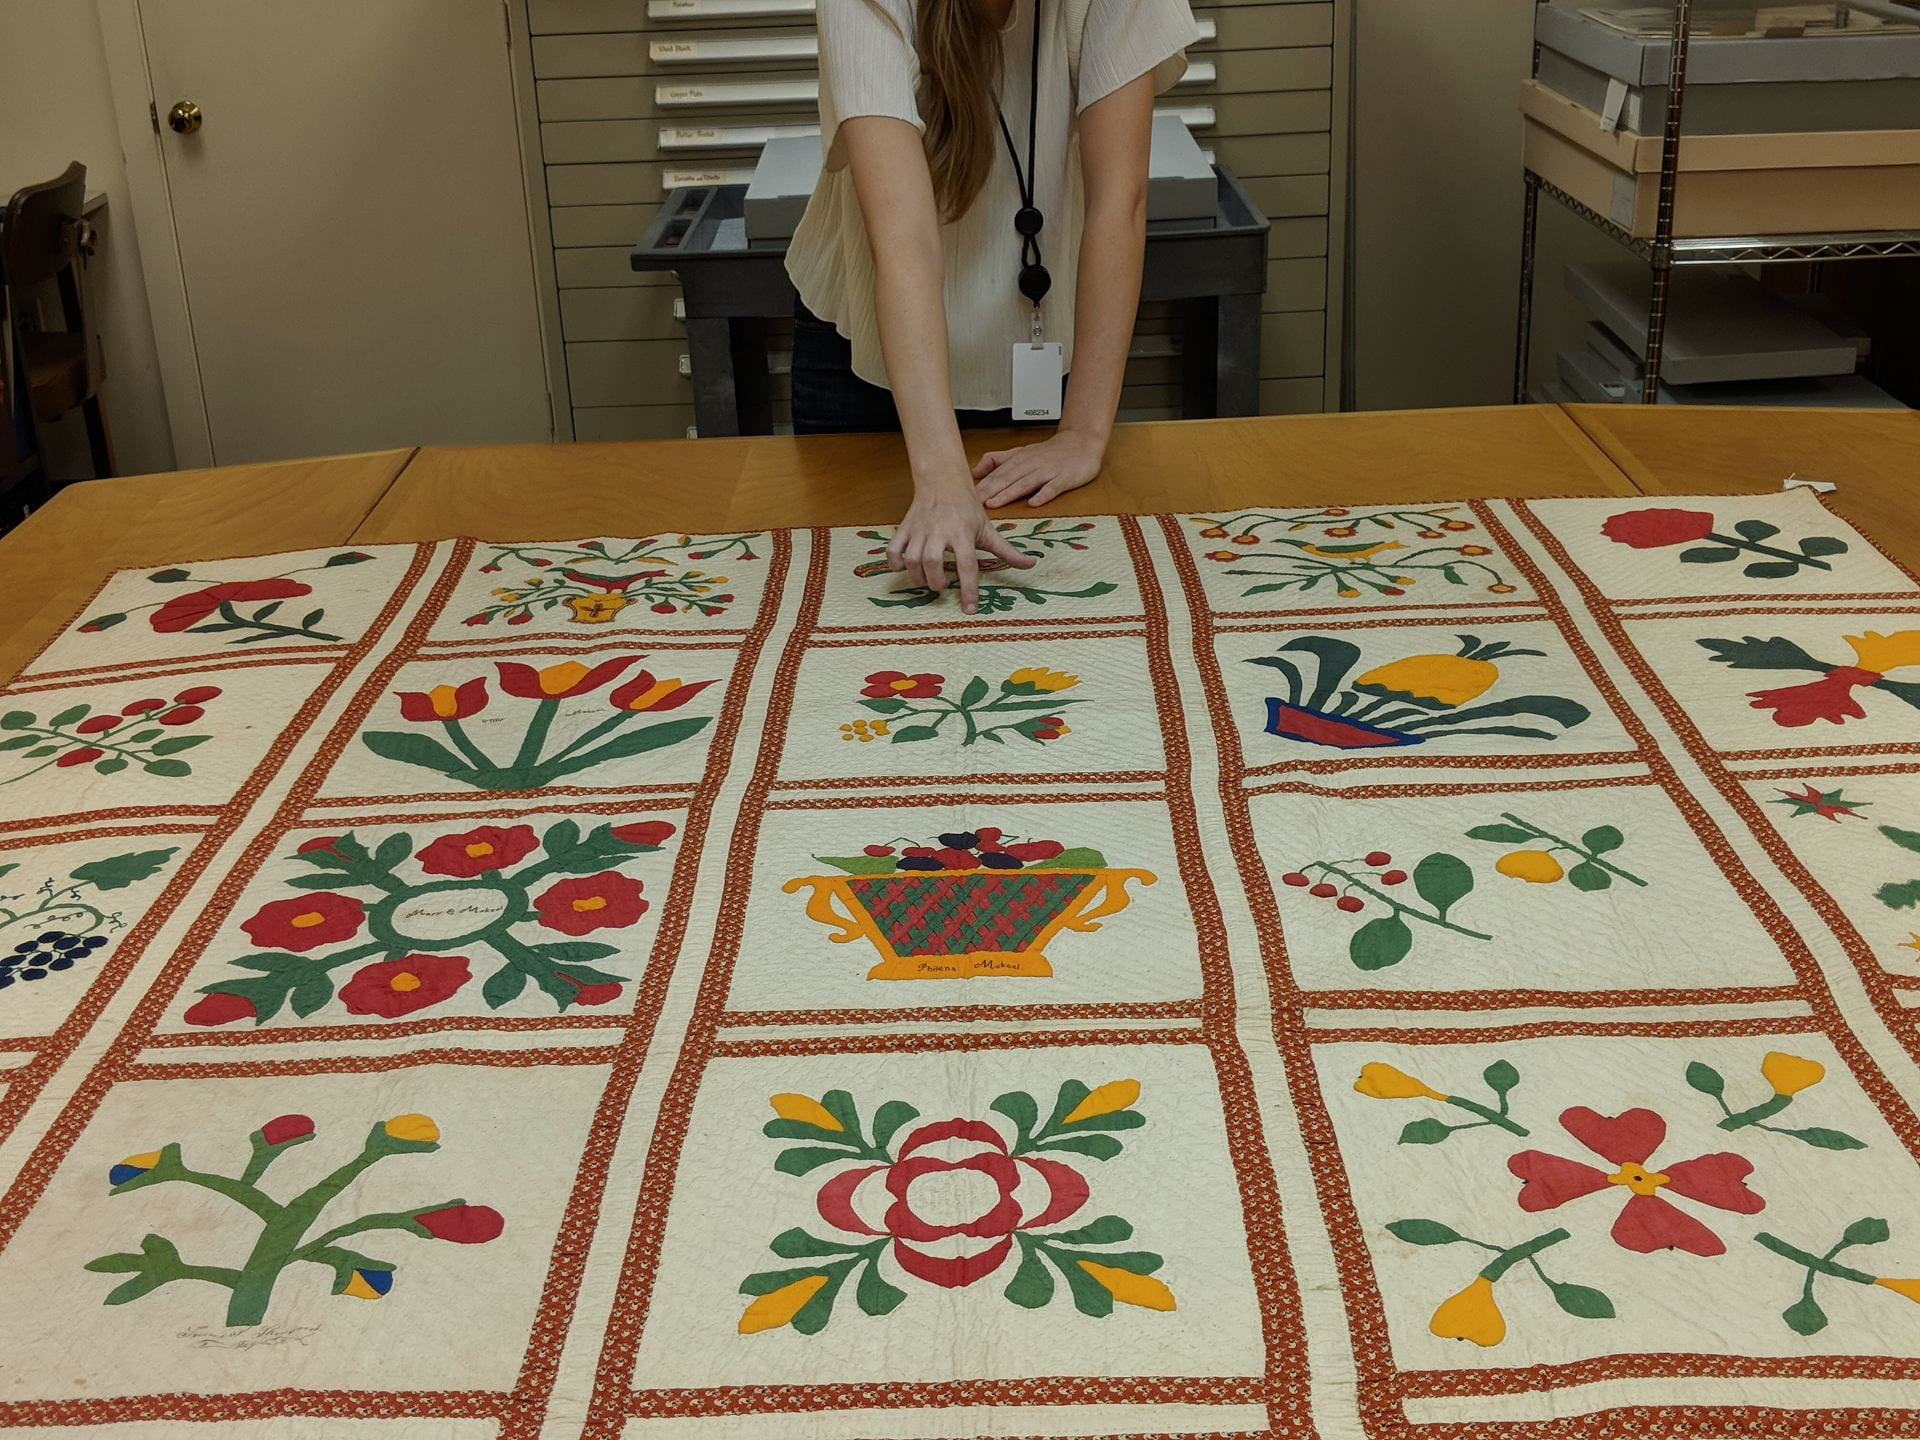 A woman points at a red and green quilt with various flowers, fruit, and geometric shapes on a table in the textile study lab of Winterthur.